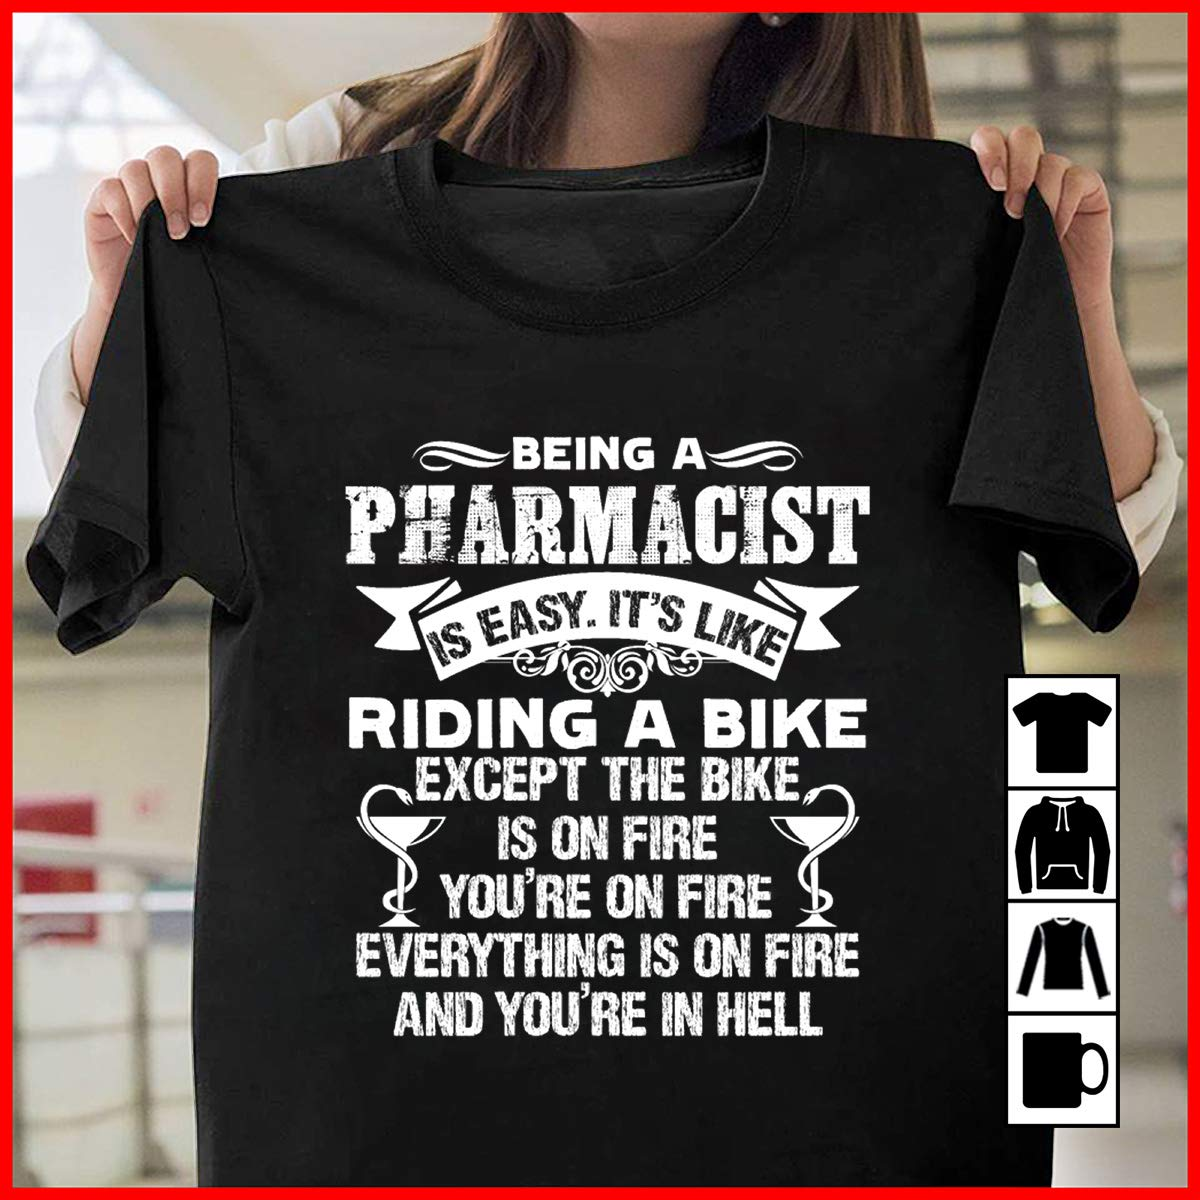 Pharmacist Being A Pharmacist Is Easy Shirt A Person Whose Job Is To Prepare Medicines And